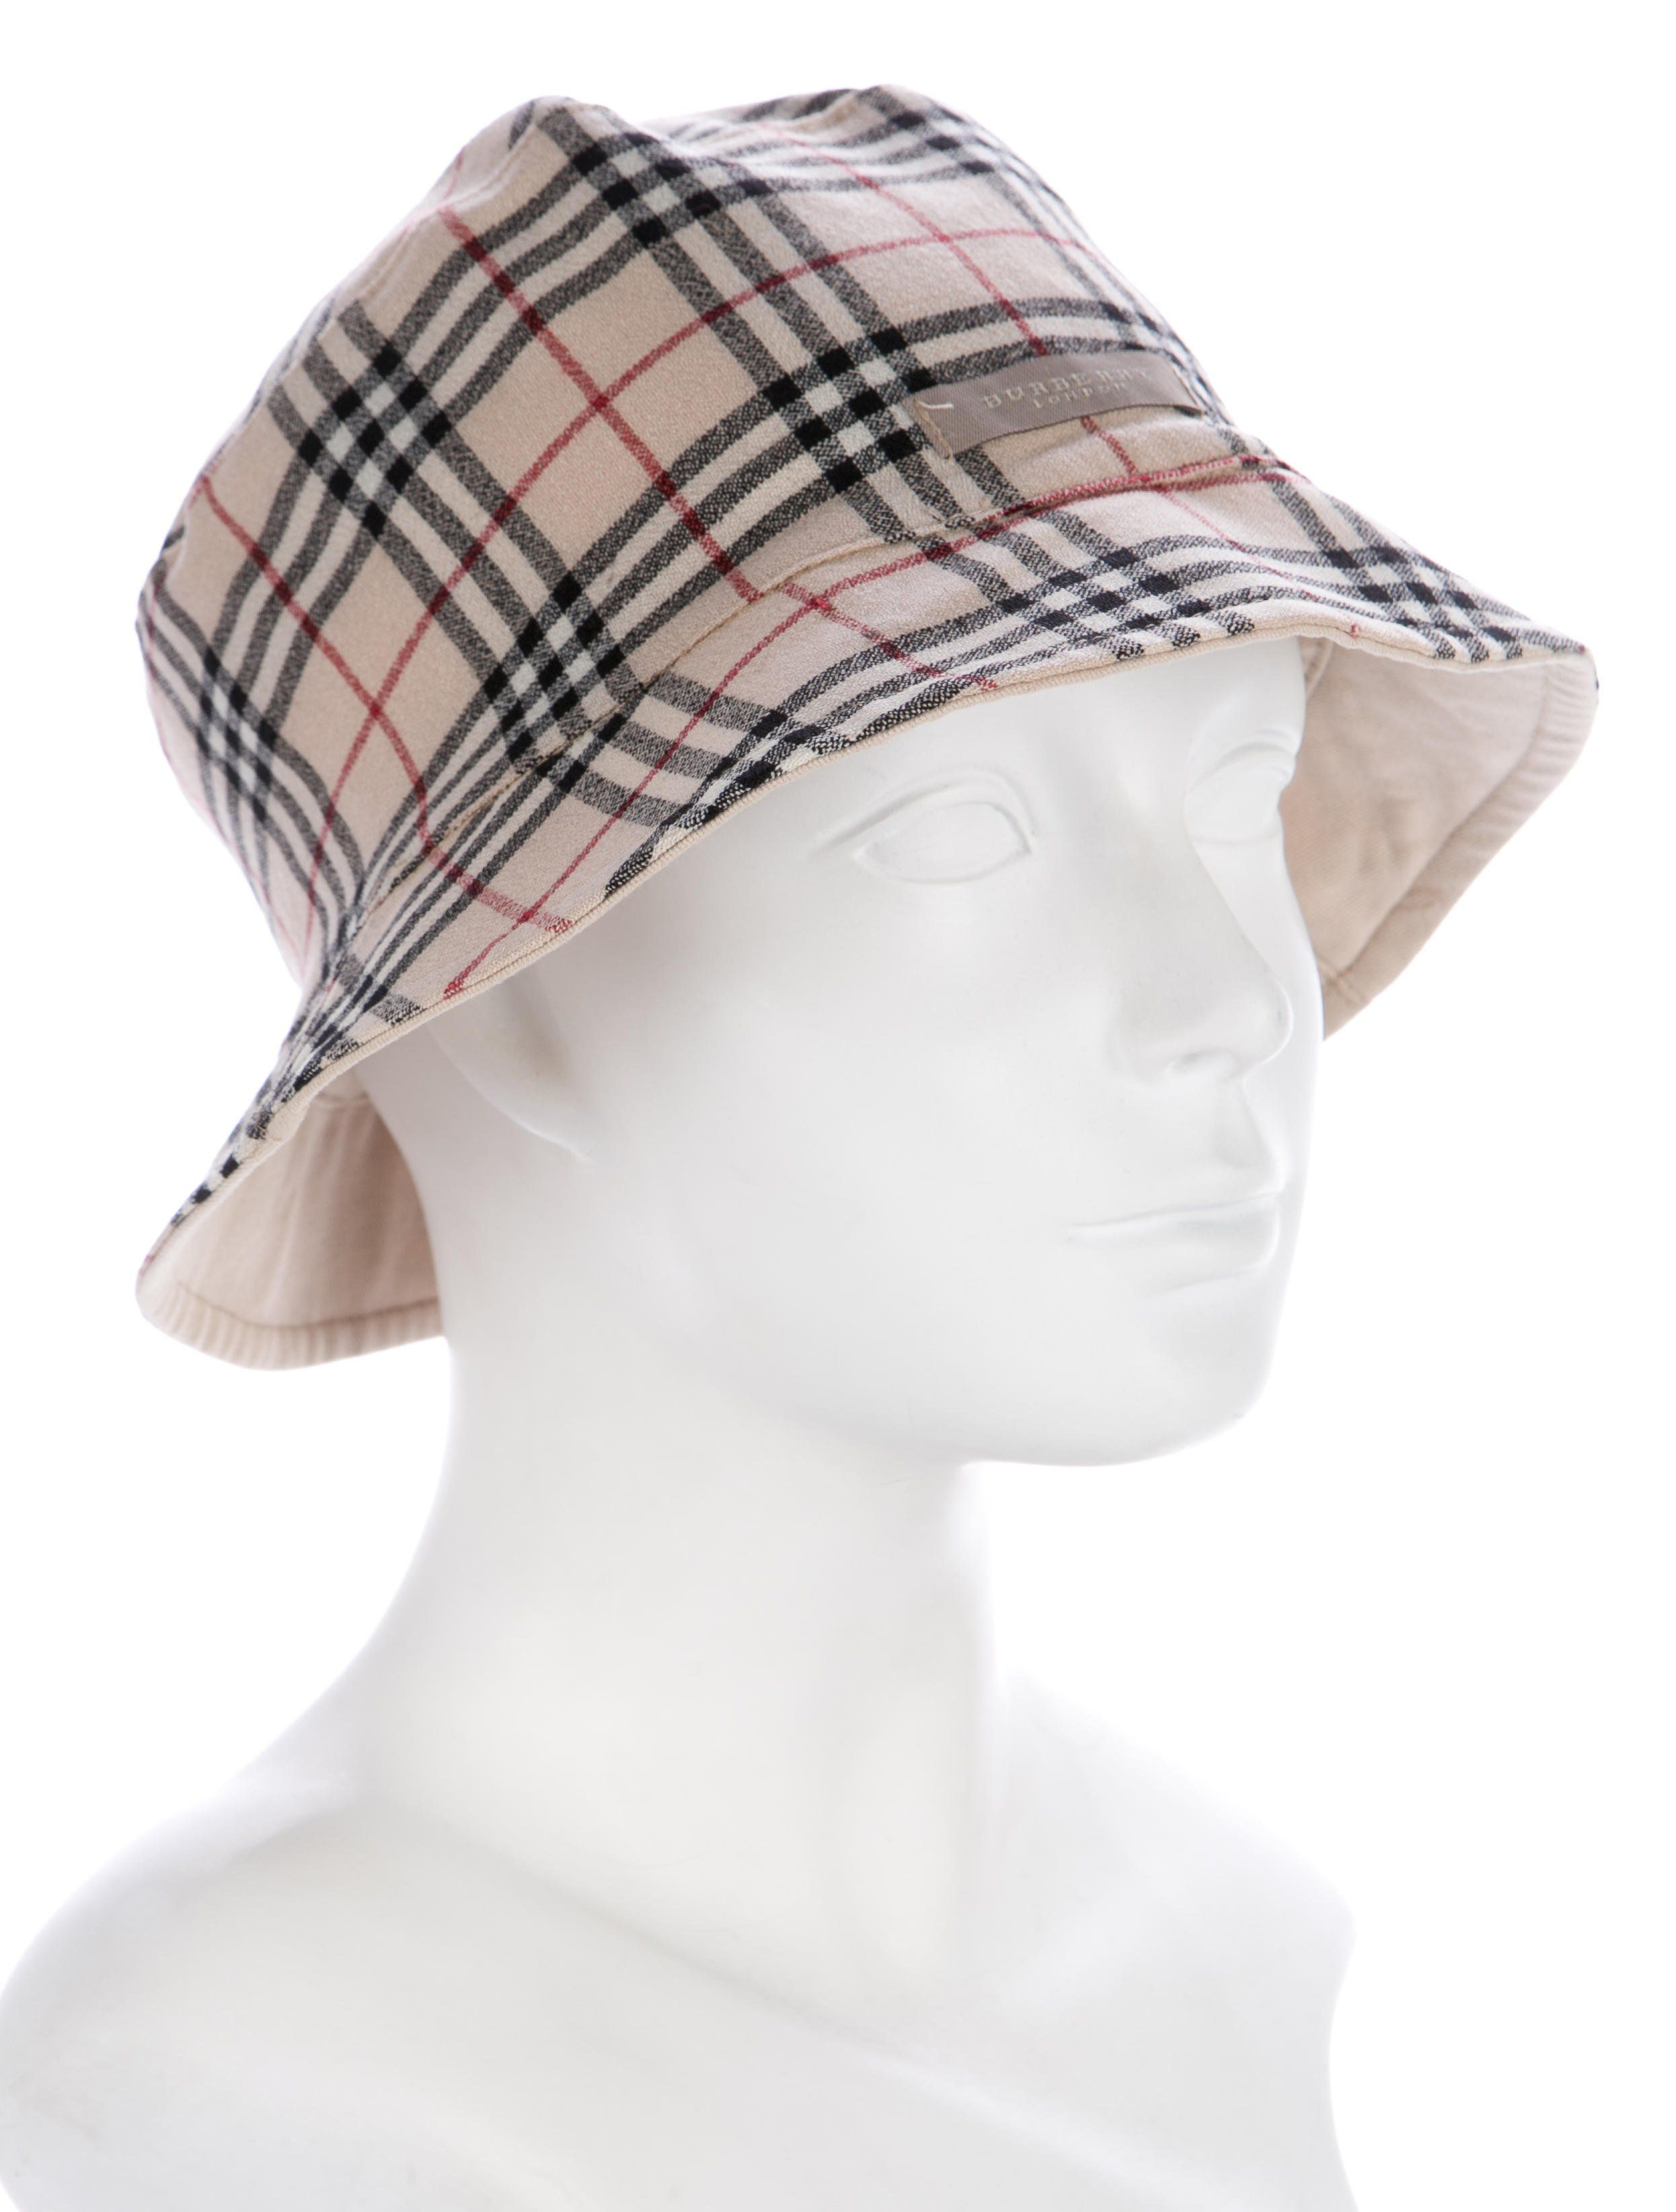 ae9b2a90b02 Beige and multicolor burberry reversible bucket hat featuring nova check  pattern throughout jpg 2492x3288 Burberry reversible